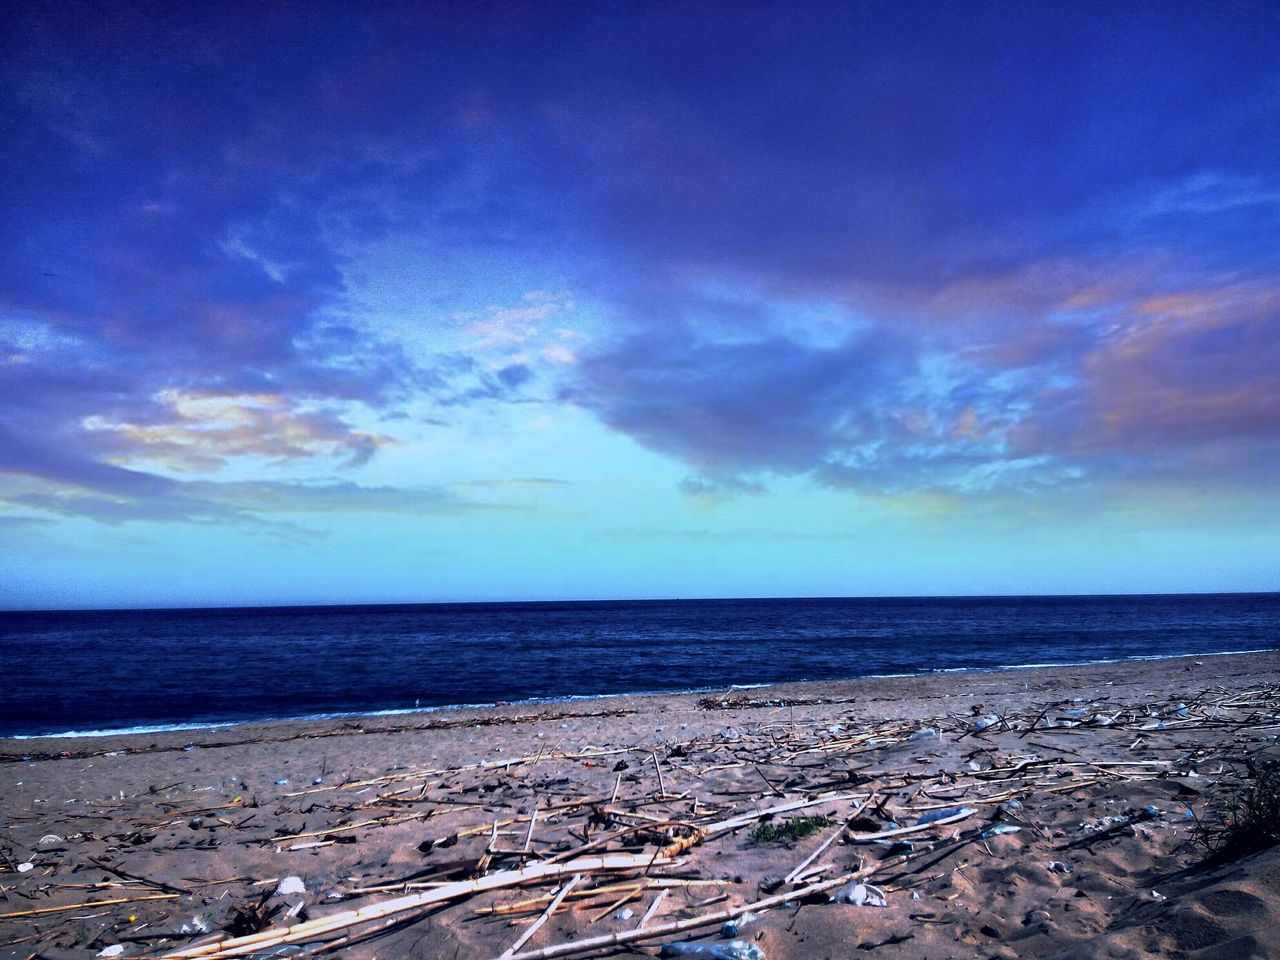 sea, horizon over water, sky, scenics, water, tranquil scene, tranquility, nature, cloud - sky, beauty in nature, beach, outdoors, blue, no people, day